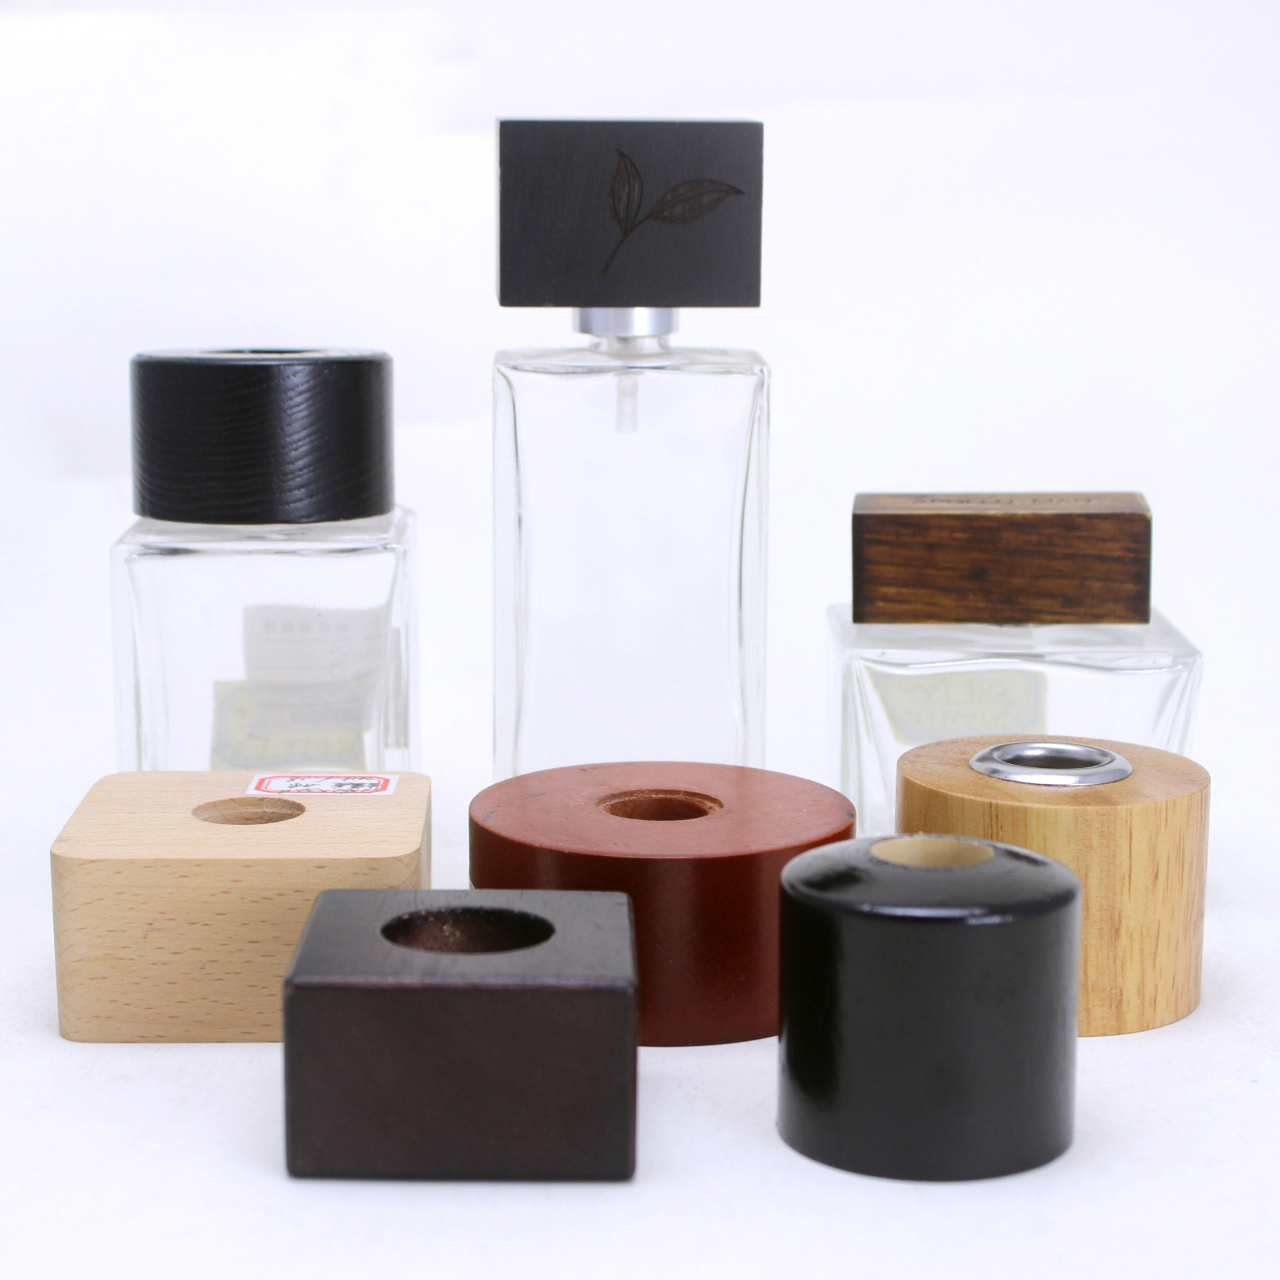 high quality round and square shapes reed diffuser wooden cap for glass diffuser bottle